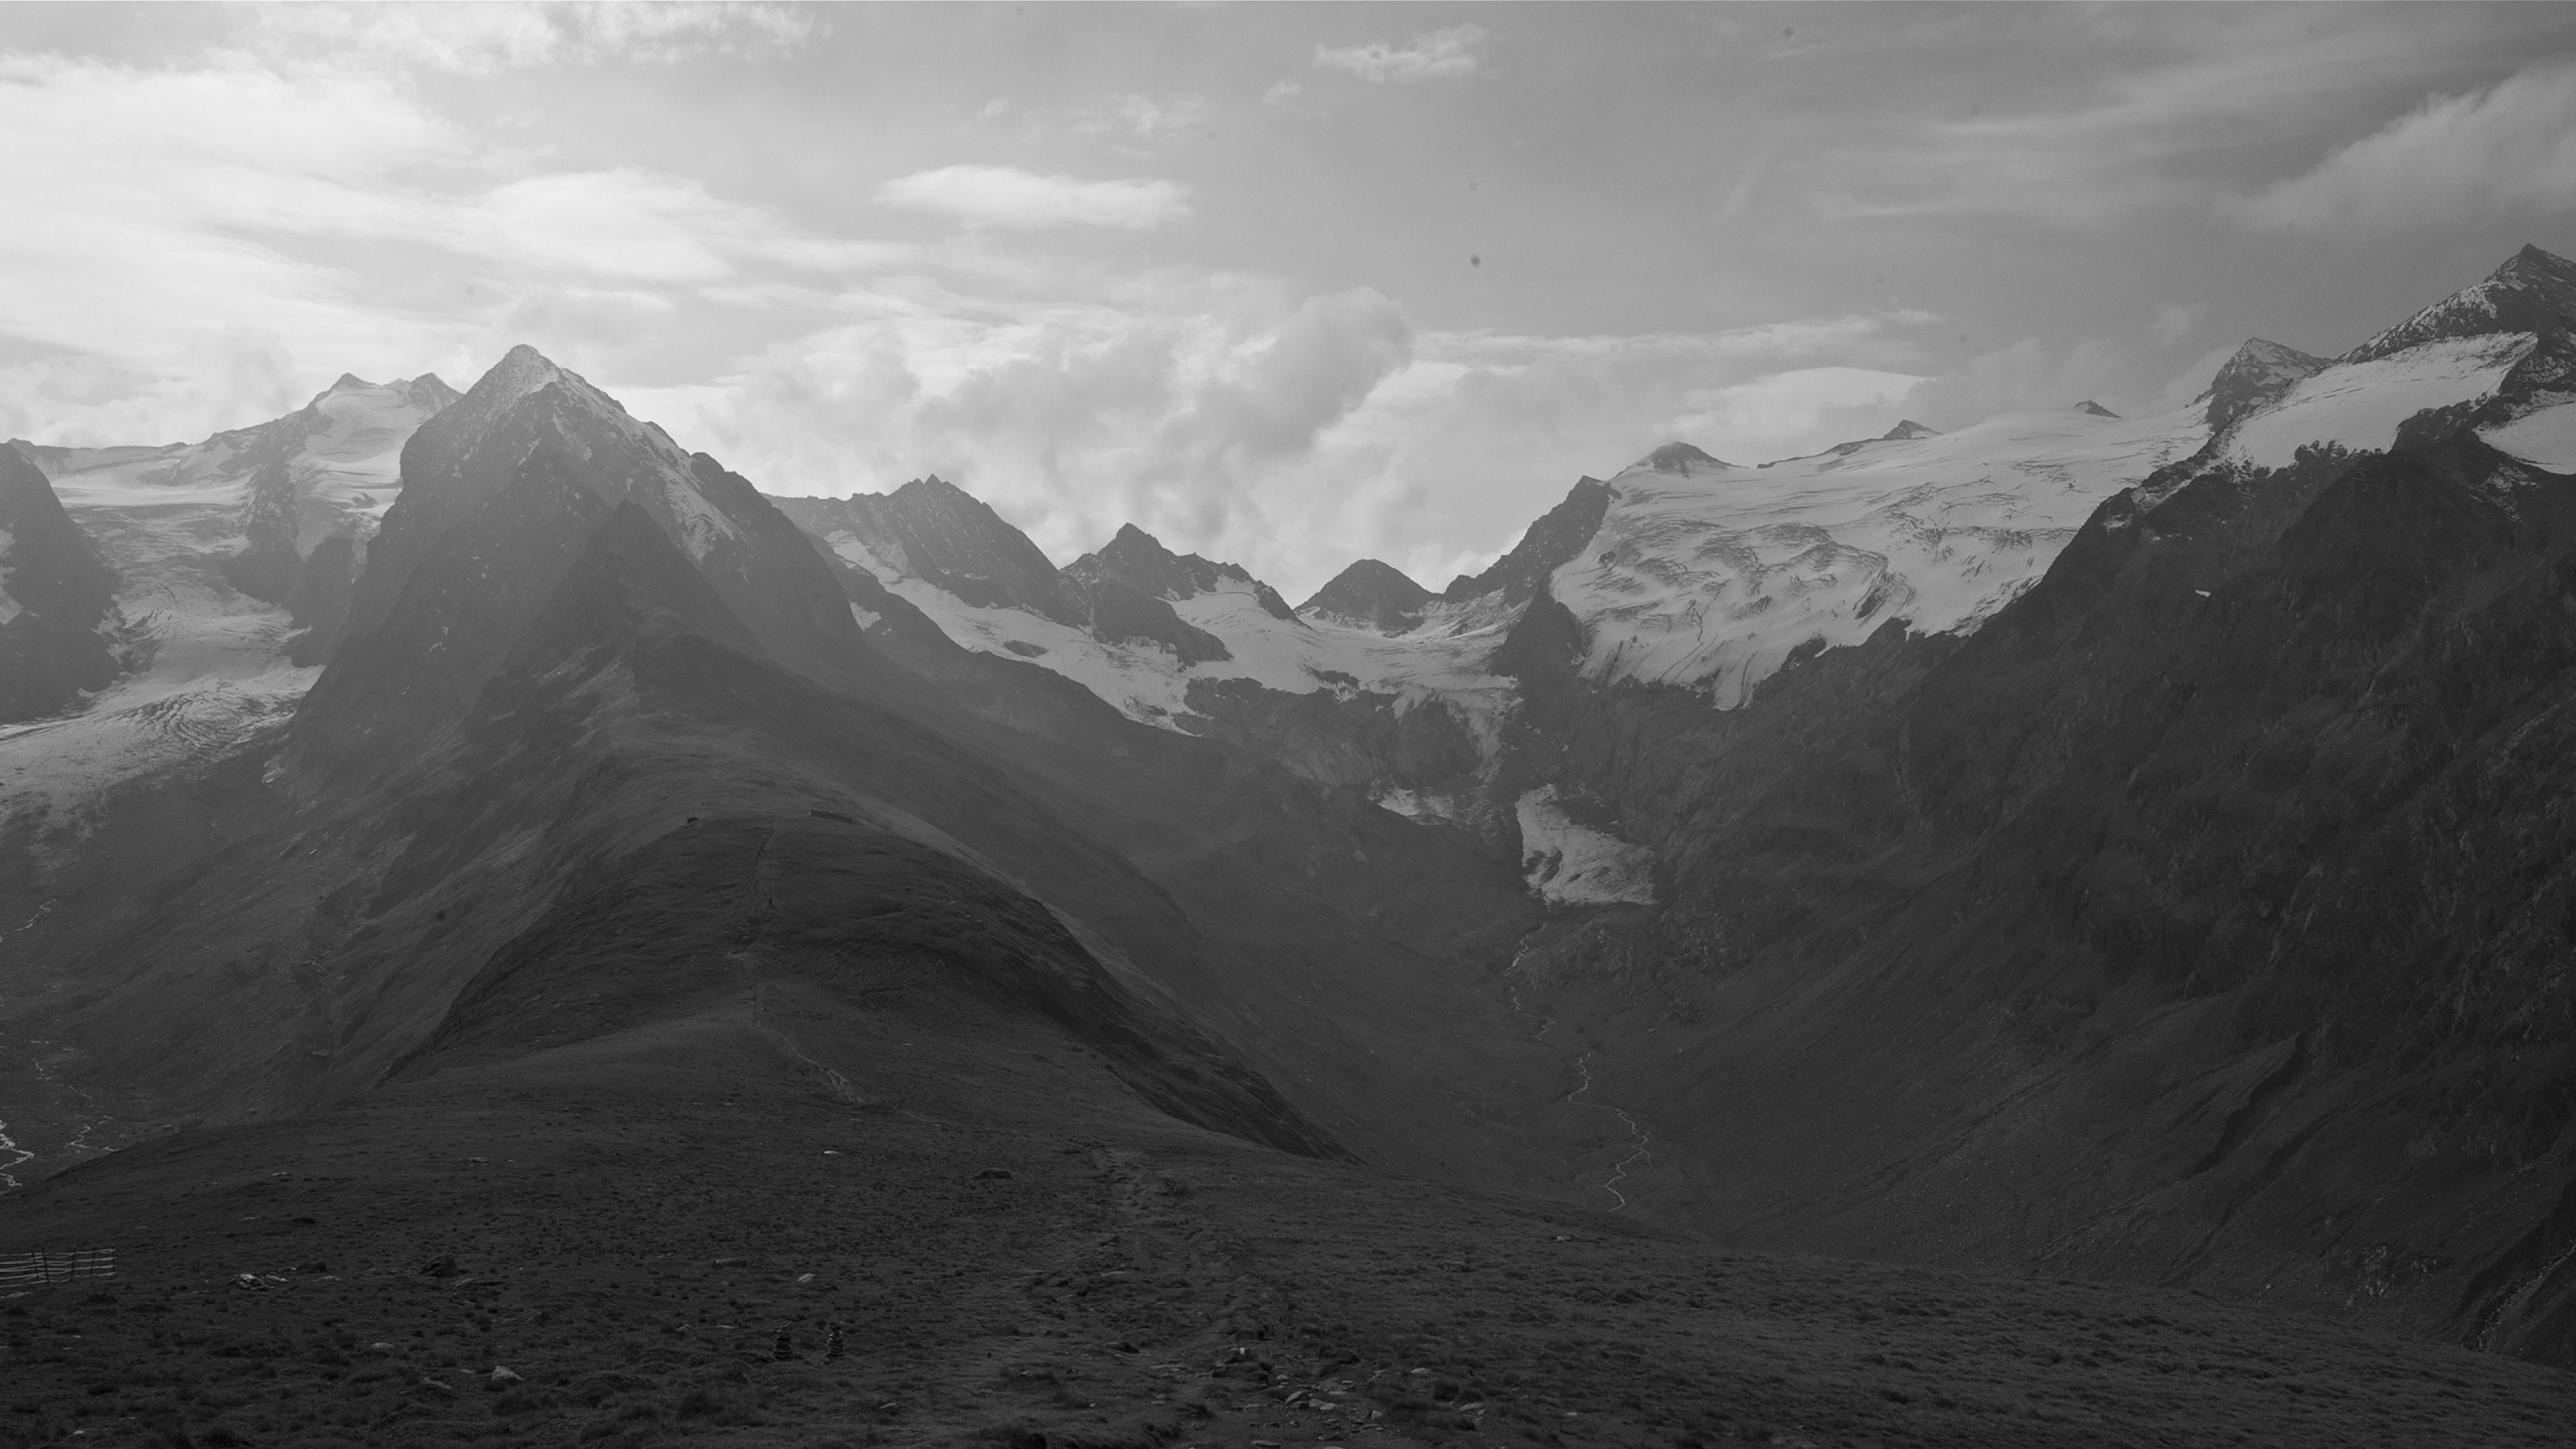 Wallpaper 3840x2160 mountains distance sky black and white 4K 3840x2160